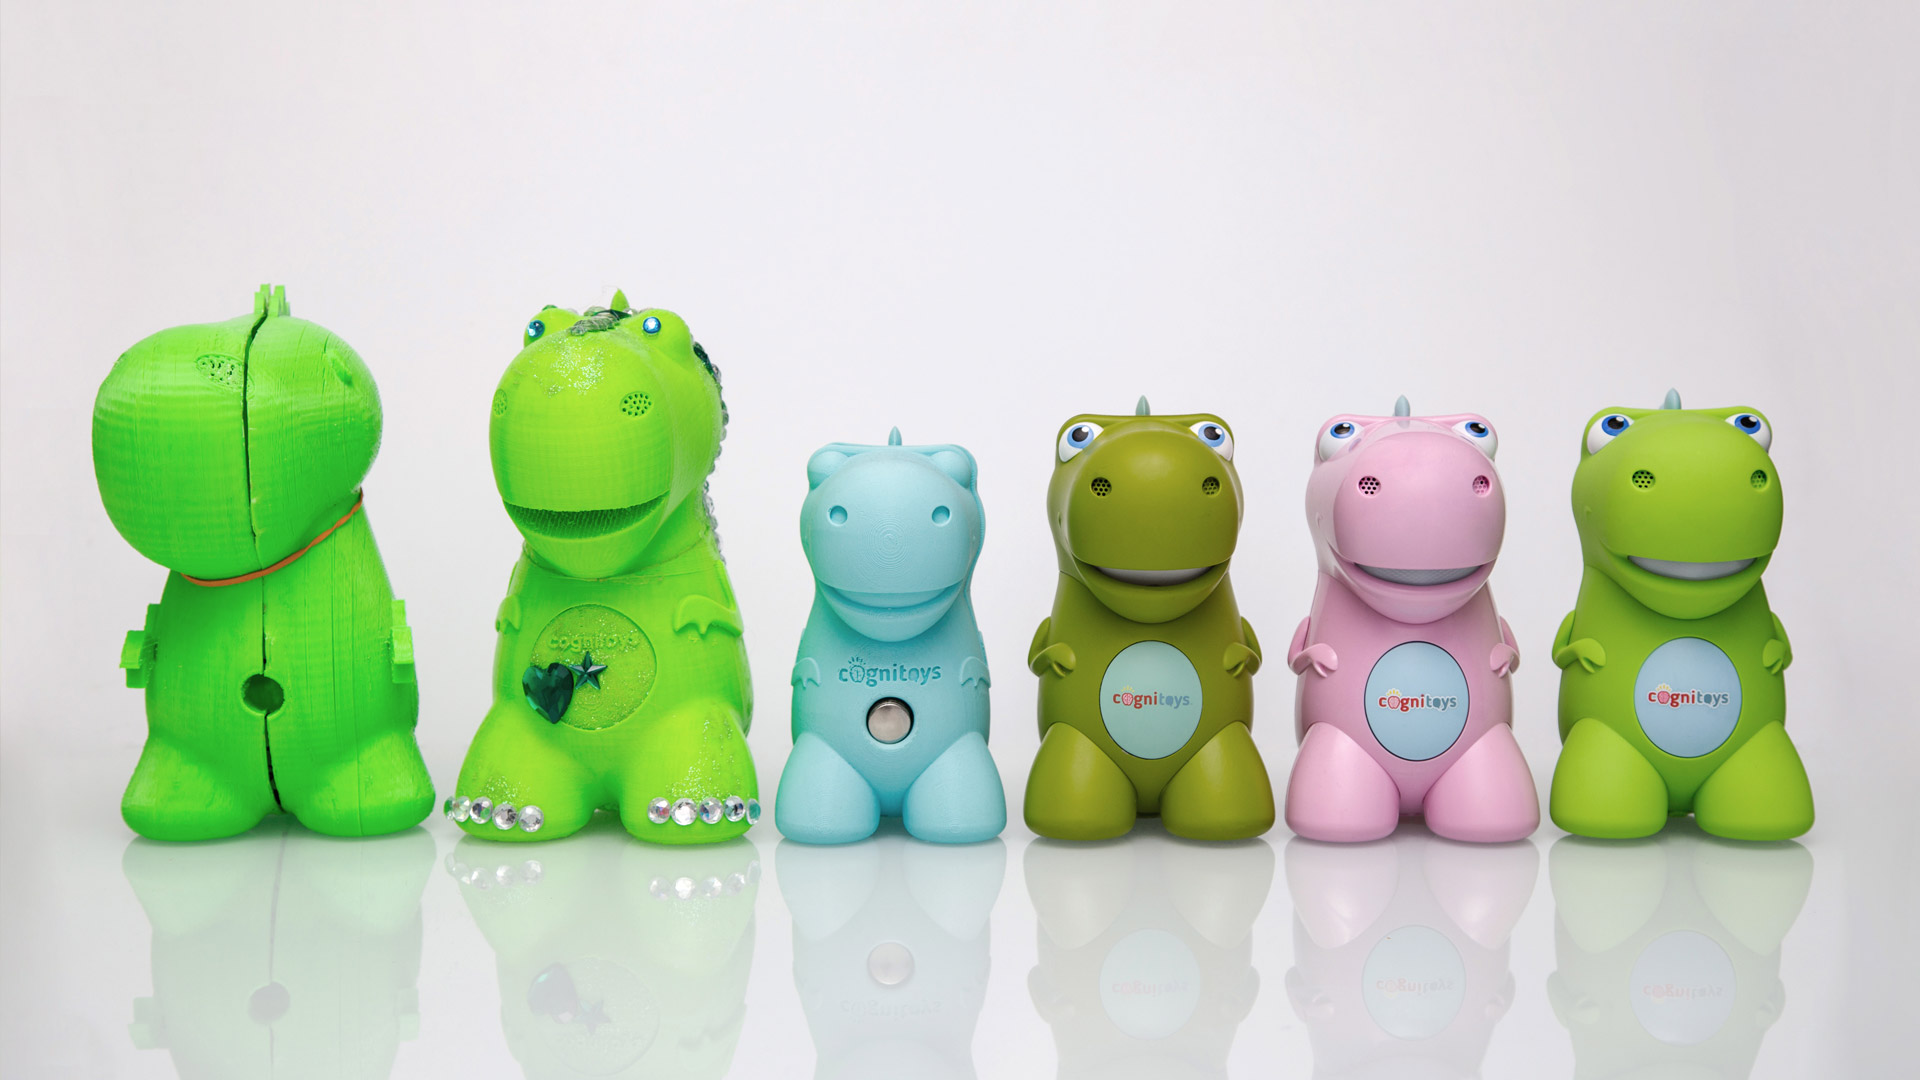 The multiple iterations and evolution of the CogniToys dinosaur product design.